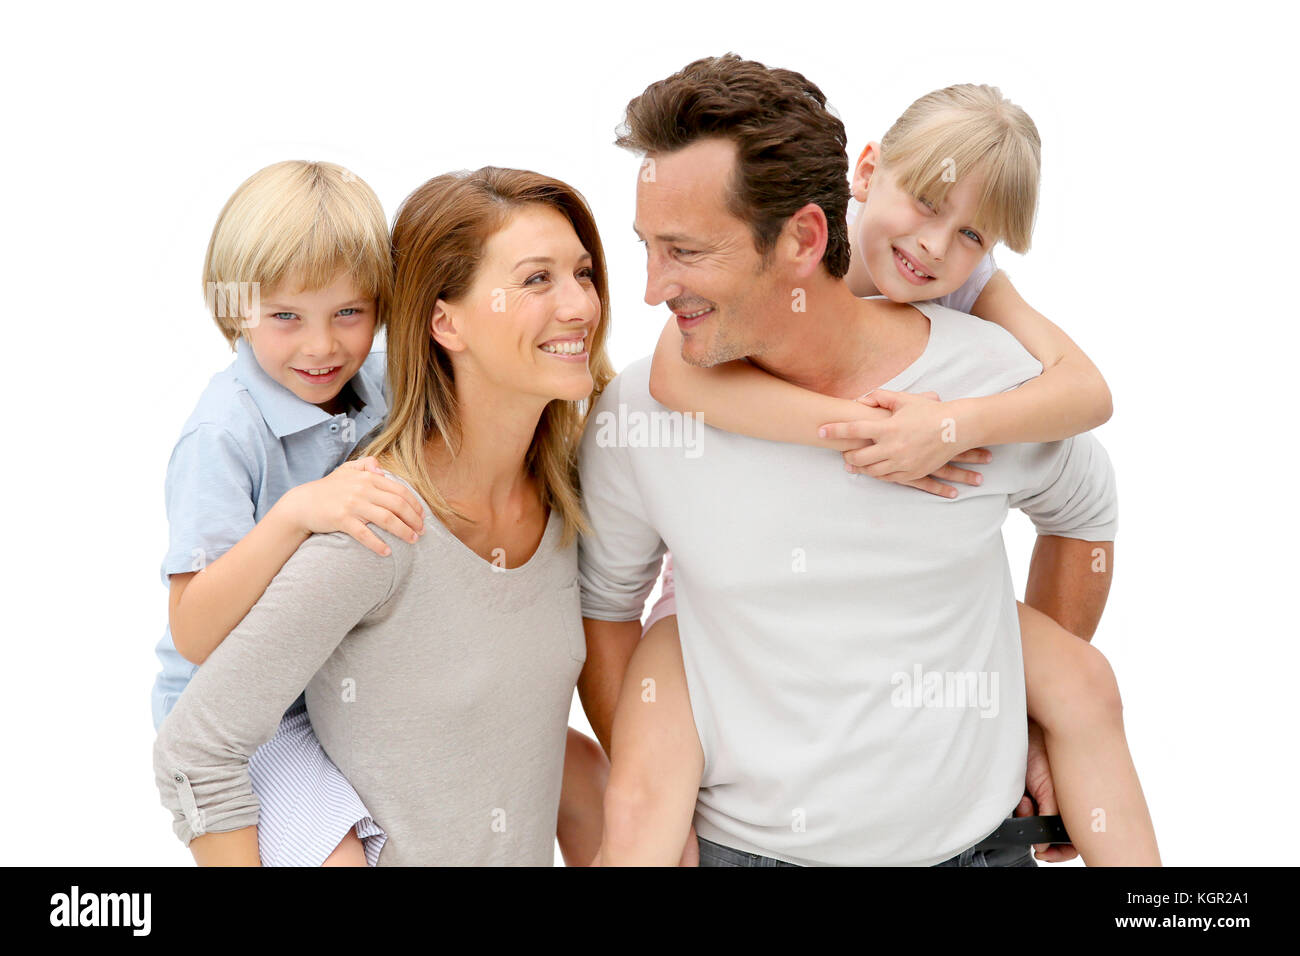 Parents giving piggyback ride to kids - Stock Image